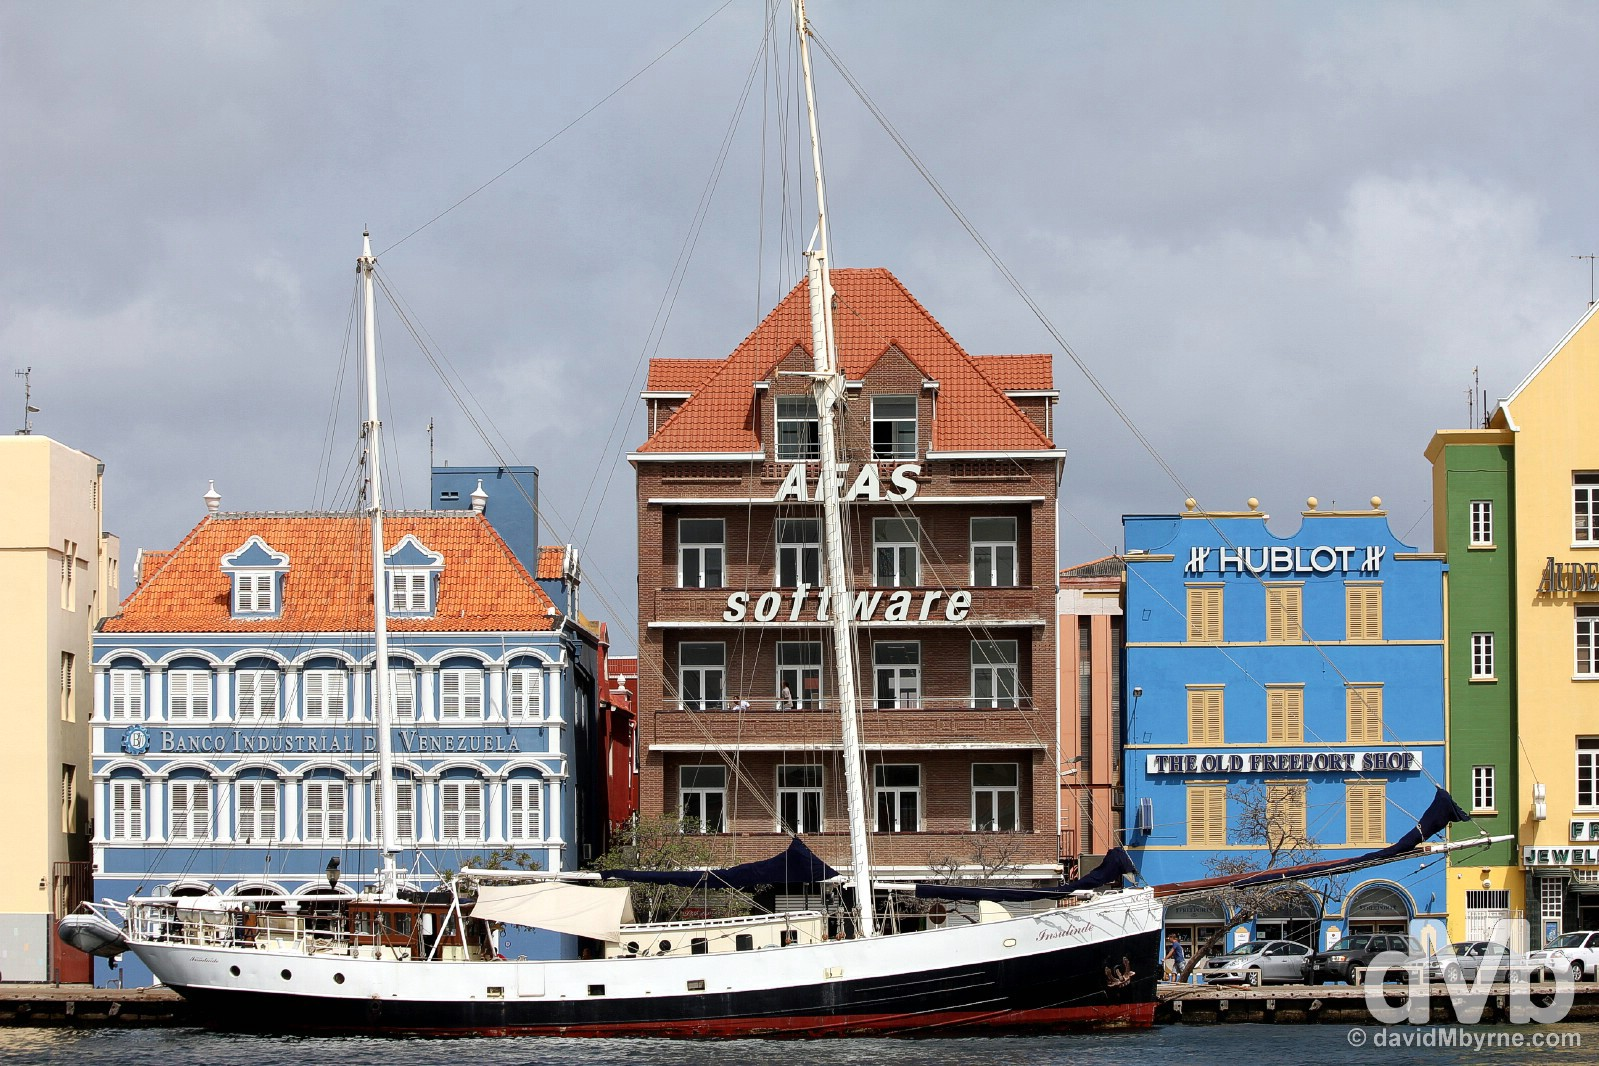 Buildings on Handels Kade lining Sint Annabaai (St Anna Bay) in Willemstad, Curacao, Lesser Antilles. June 20, 2015.